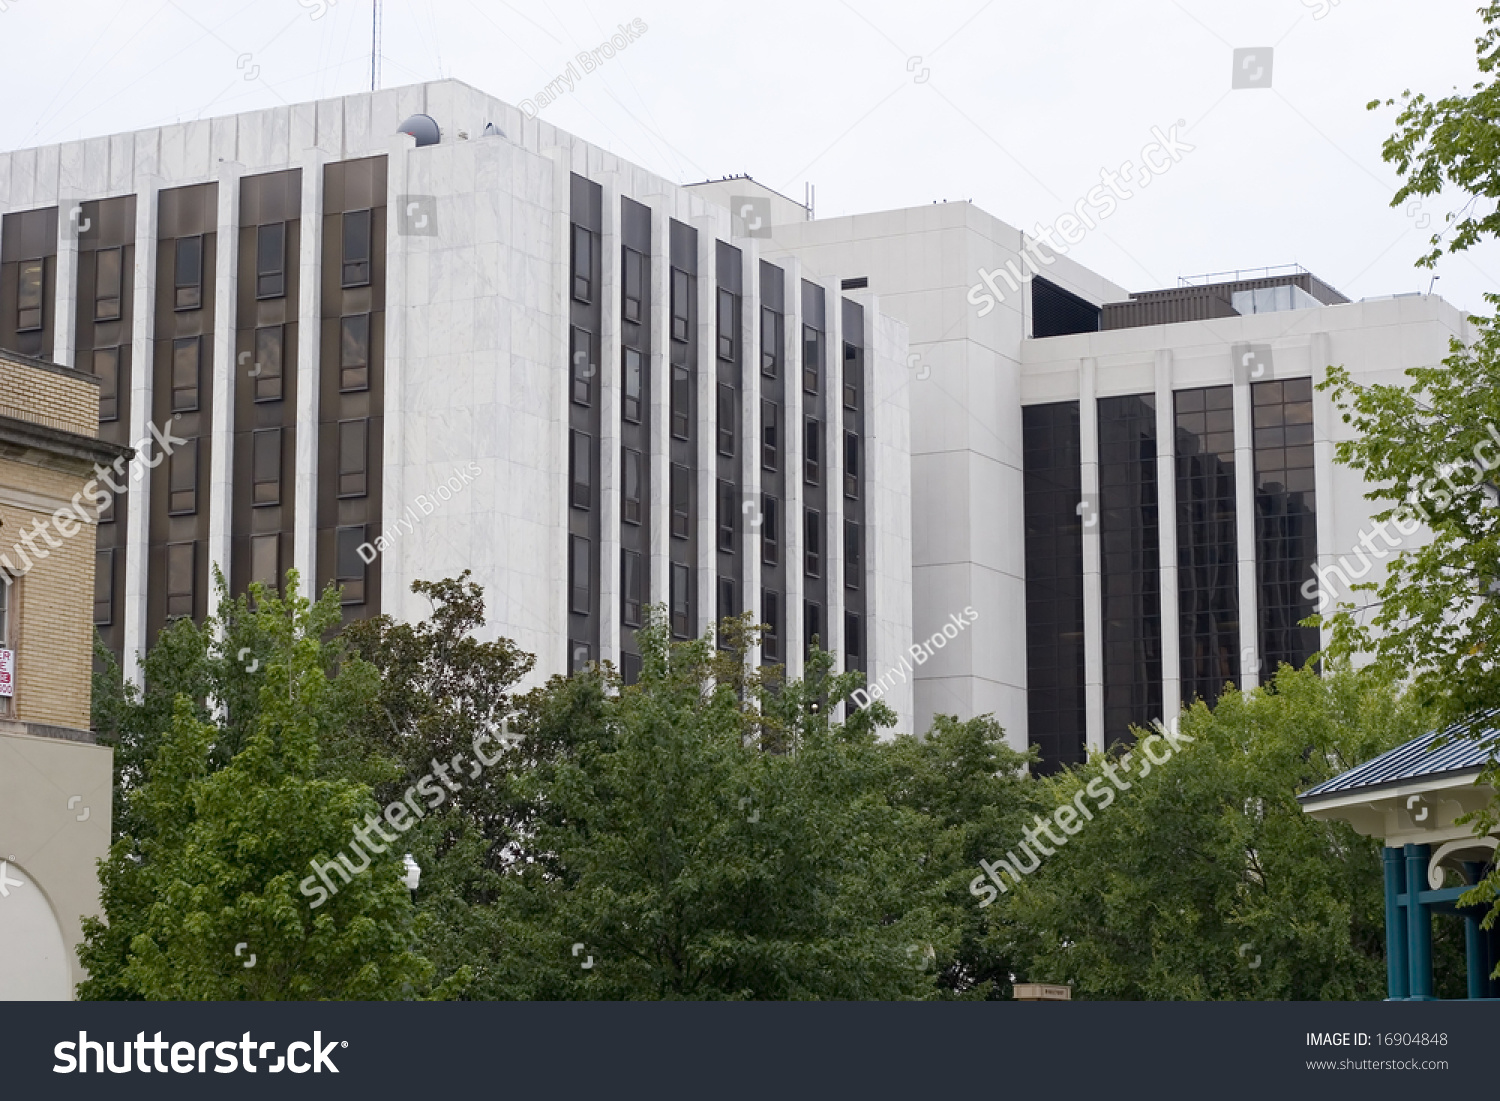 Black Marble Buildings : A modern white marble building with black windows stock